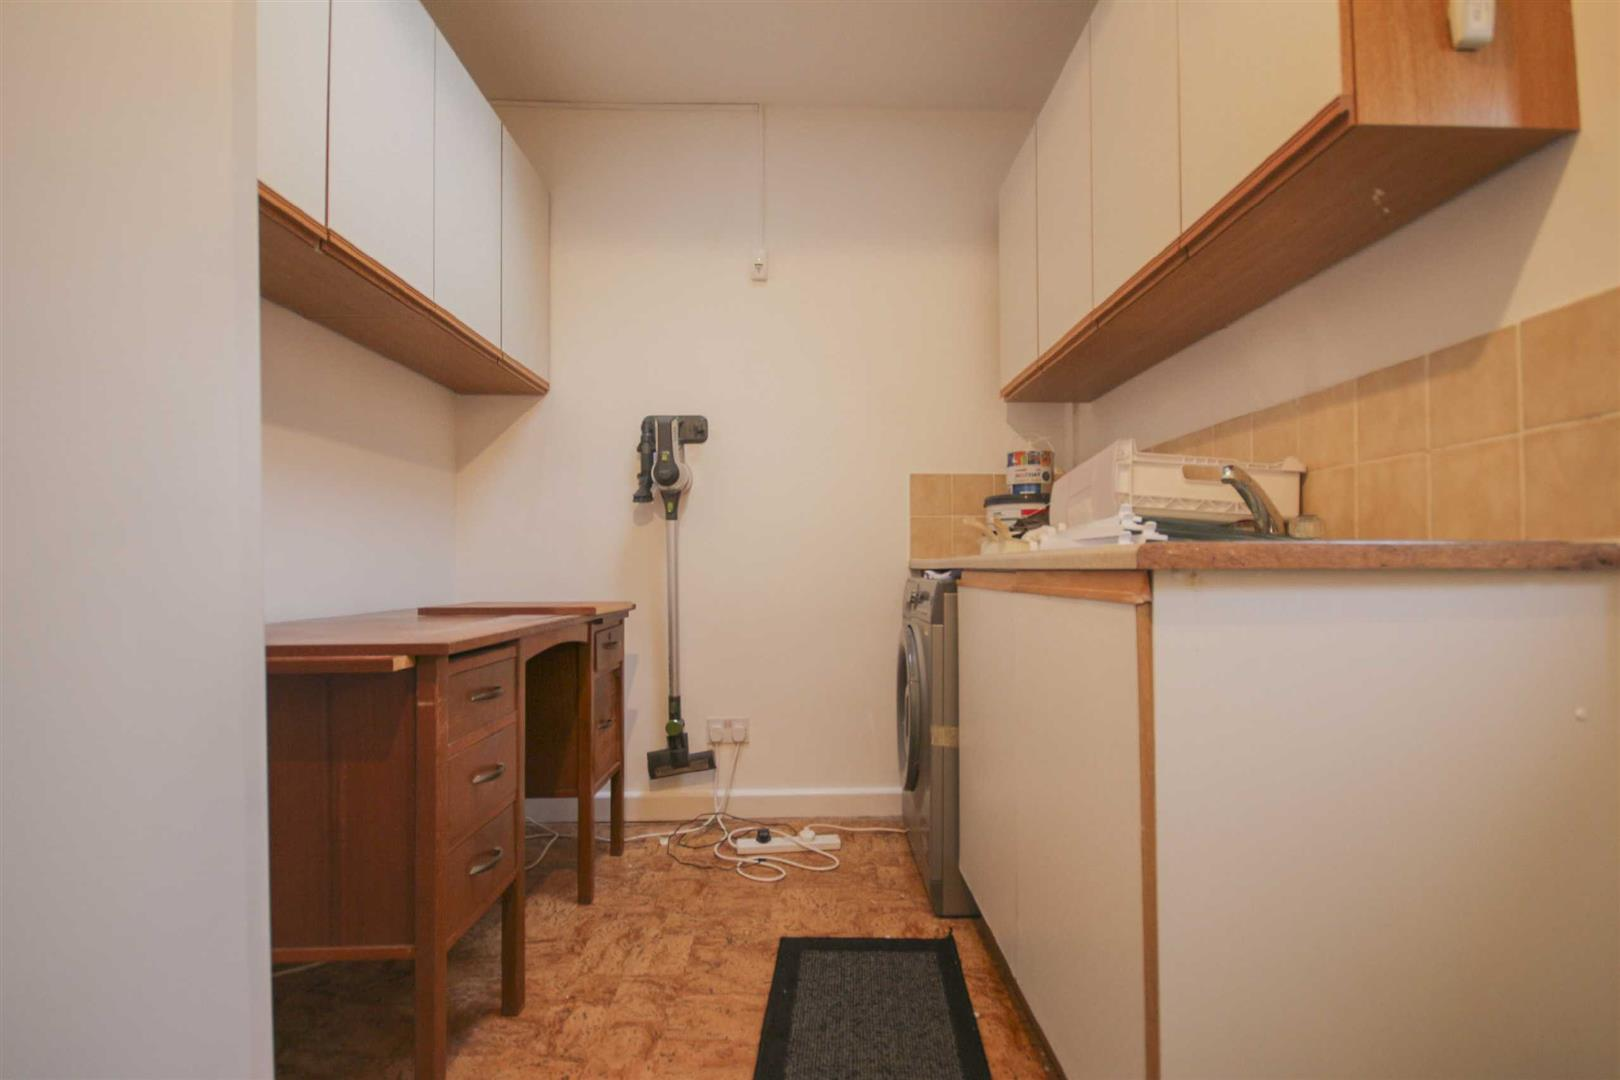 3 Bedroom Barn Conversion For Sale - Image 19